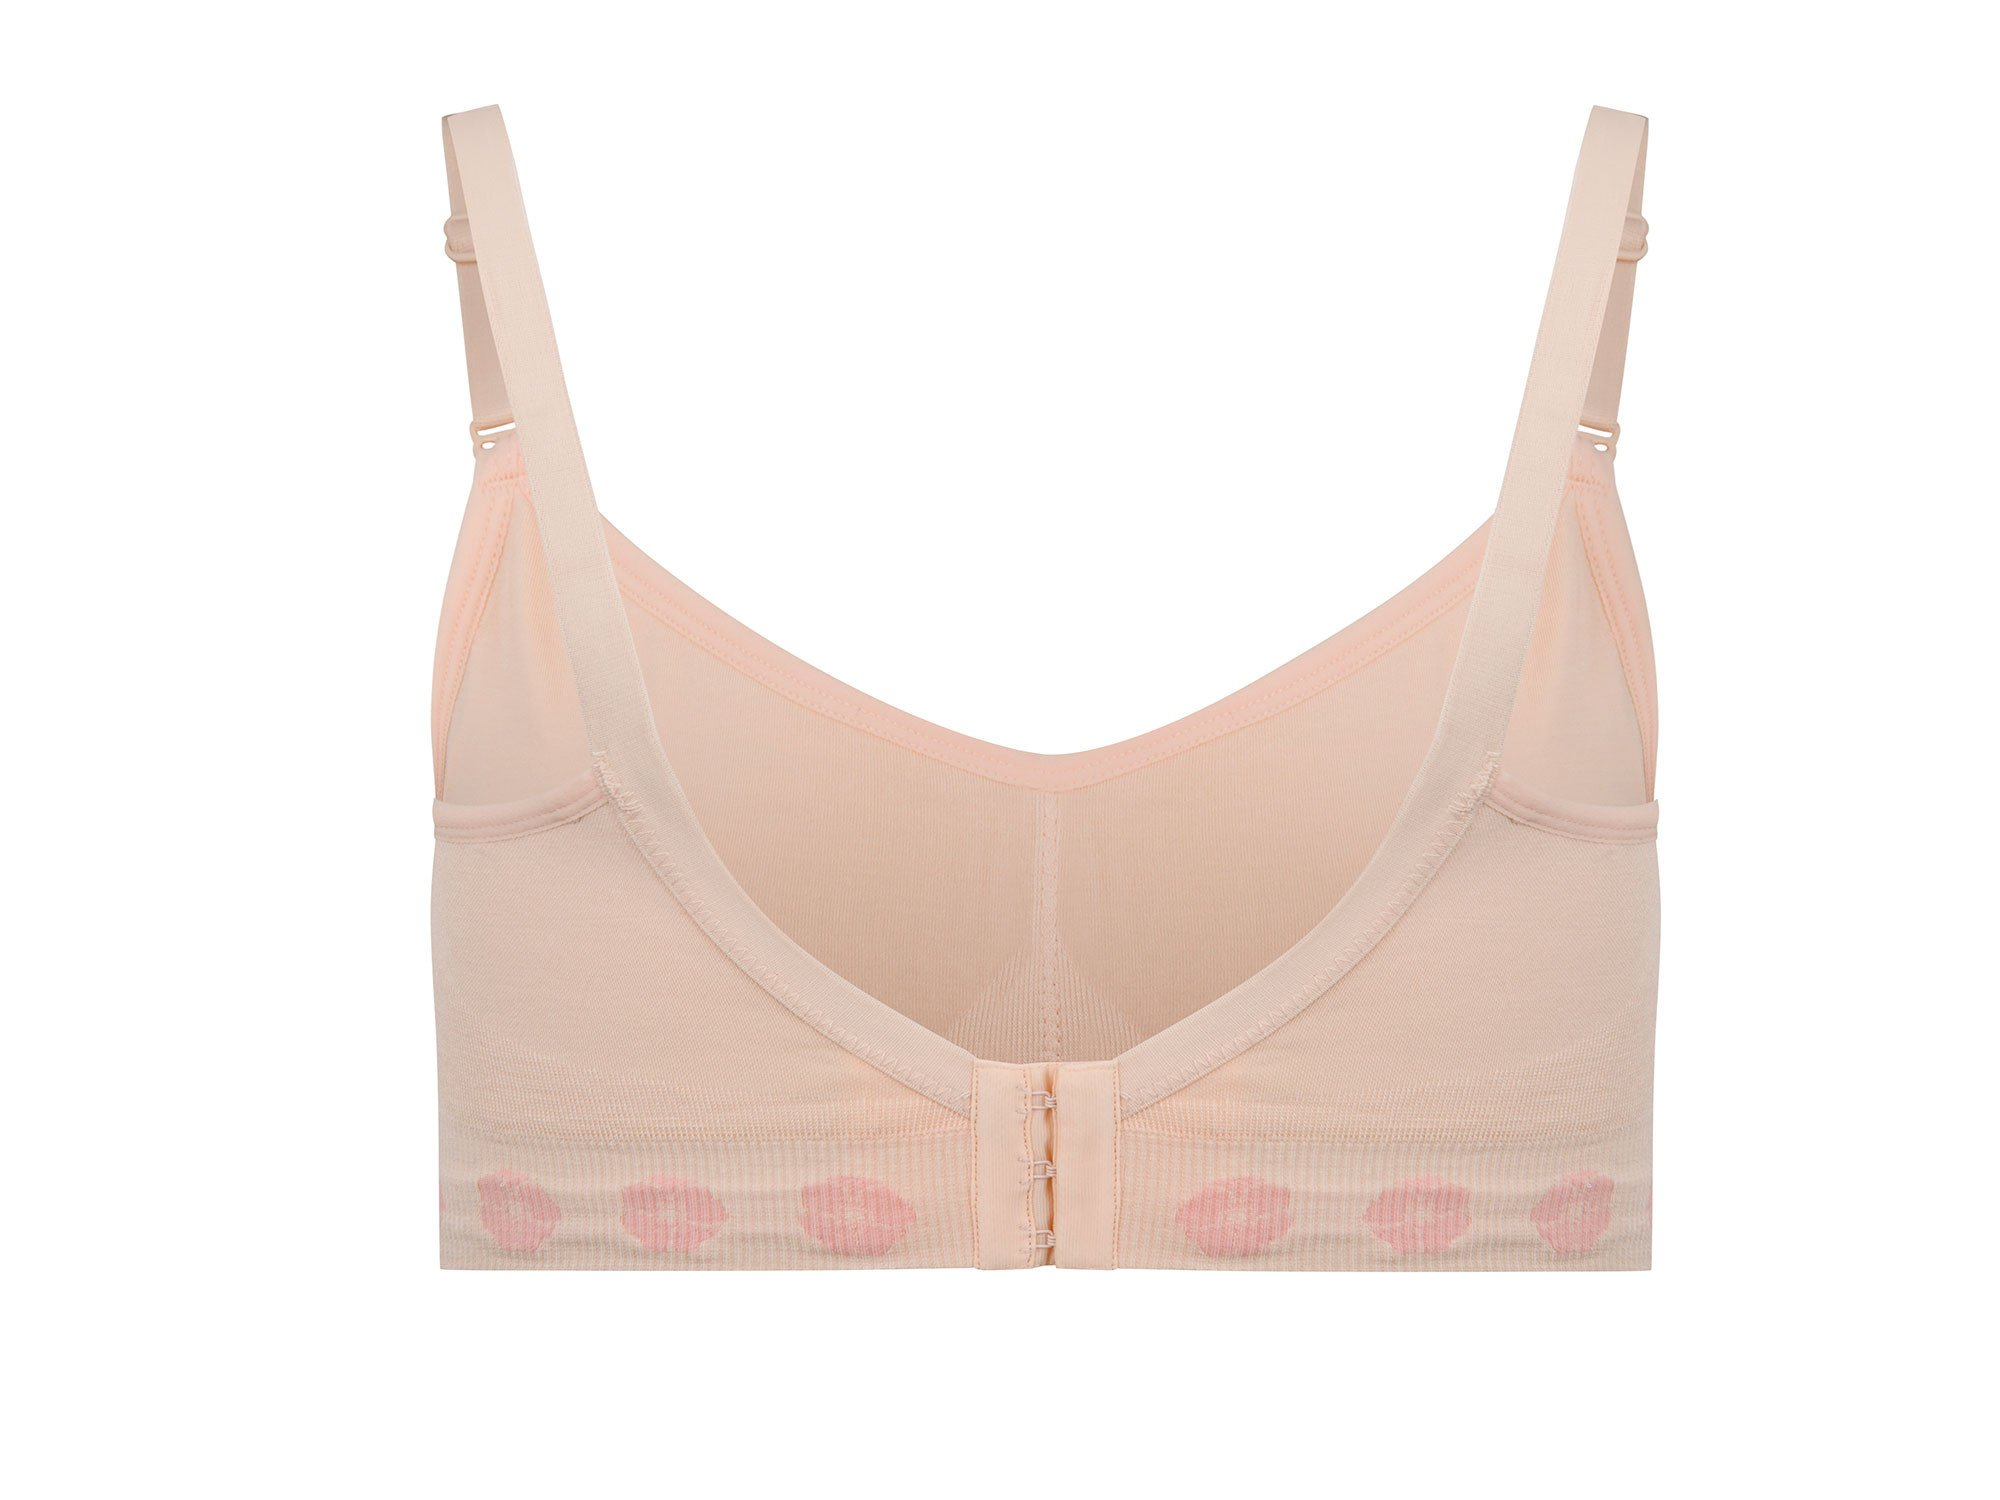 Fleur Back Fastening Comfort Bra – Light support image